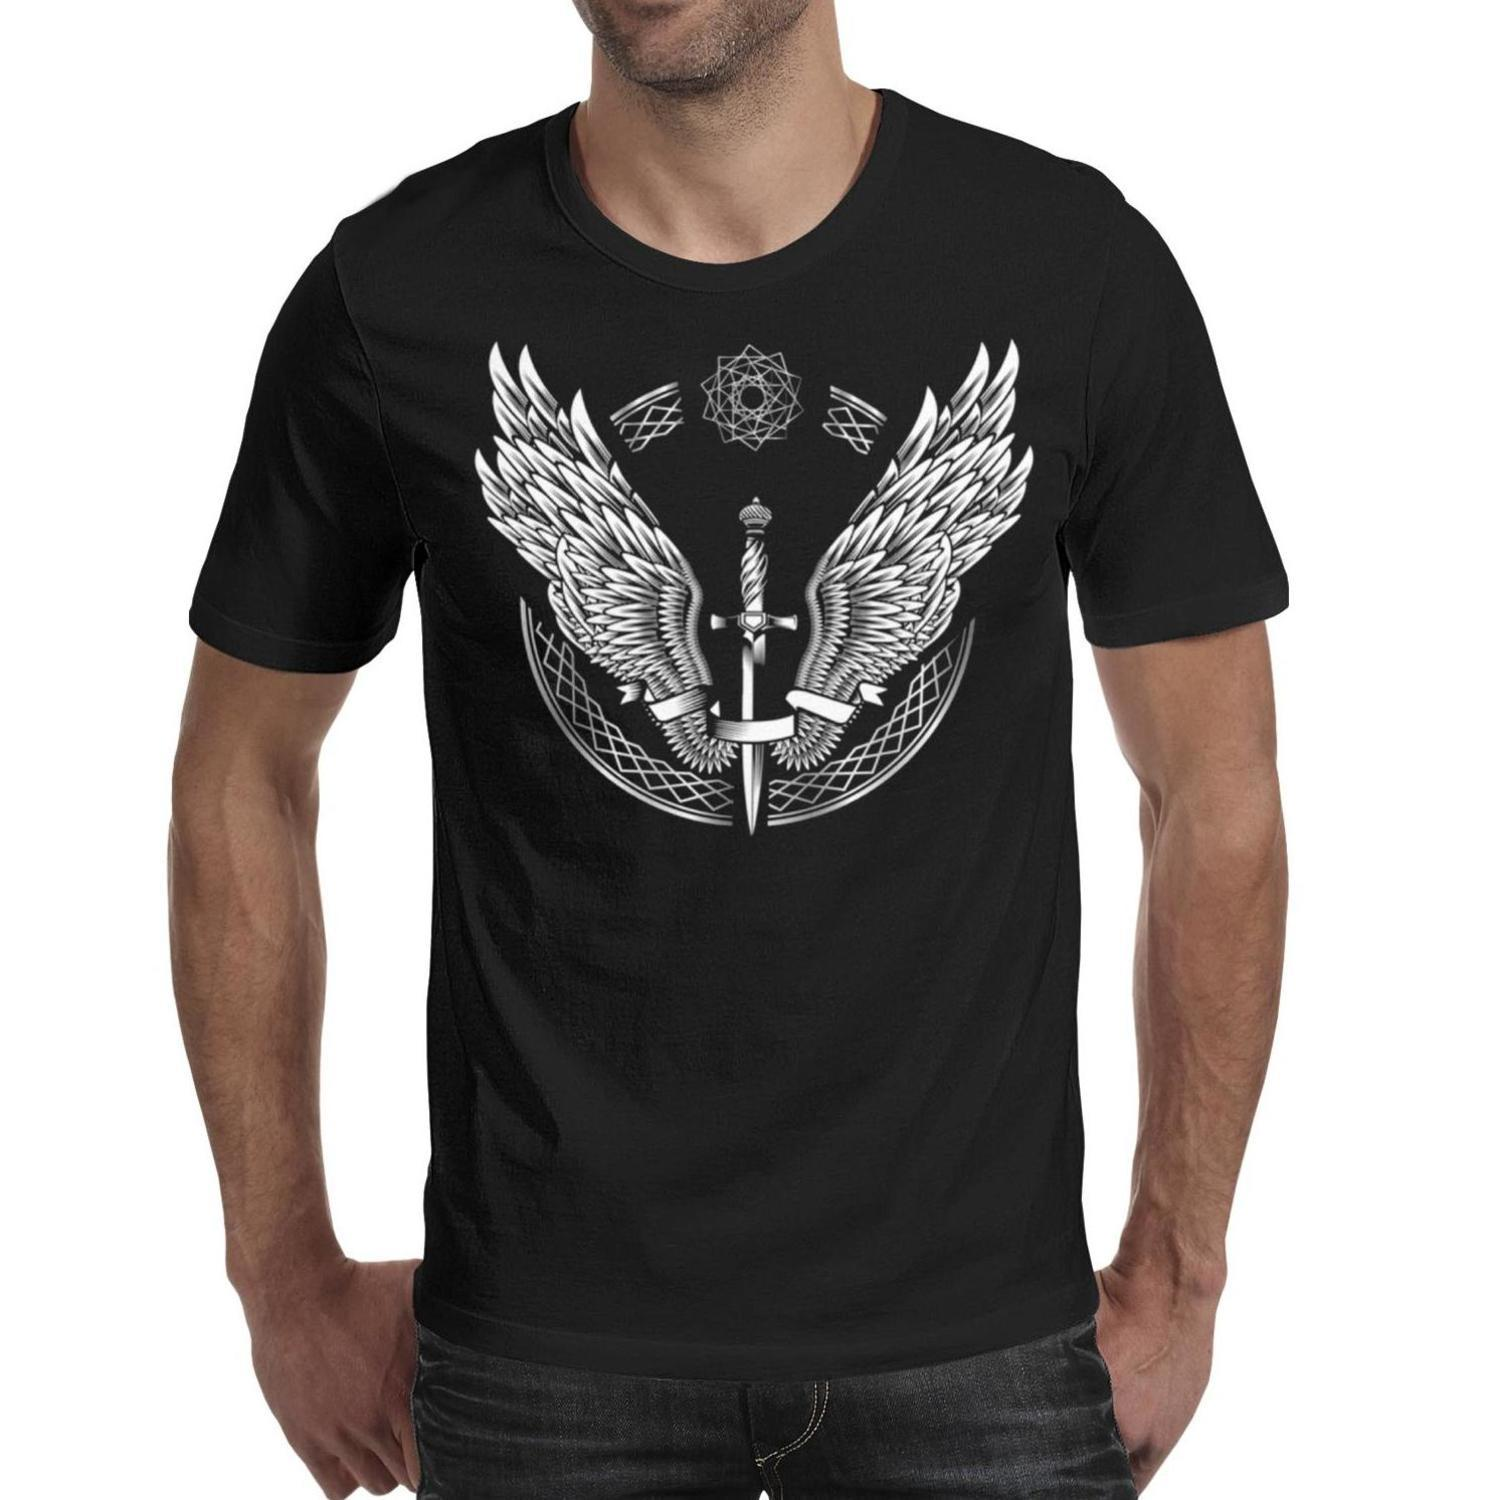 Halsey-Wings-arrow-pop-music- Men T Shirt black Shirts Custom T Shirts Funny Tee Shirts Mvp Wholesale Shirt Black